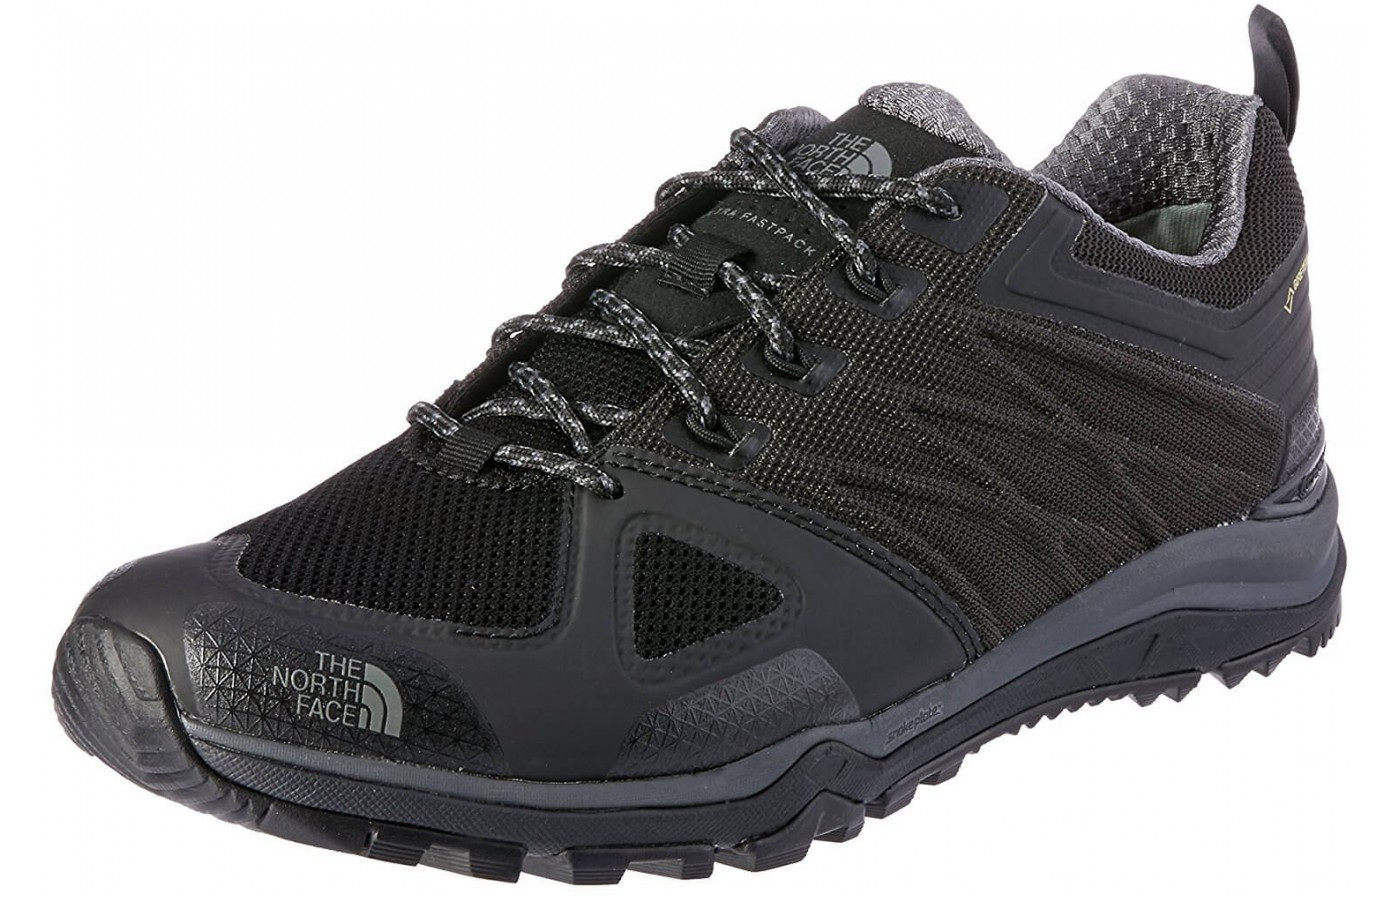 The The North Face Ultra Fastpack II GTX has a welded upper design for a  lightweight ... 249bb92c50a